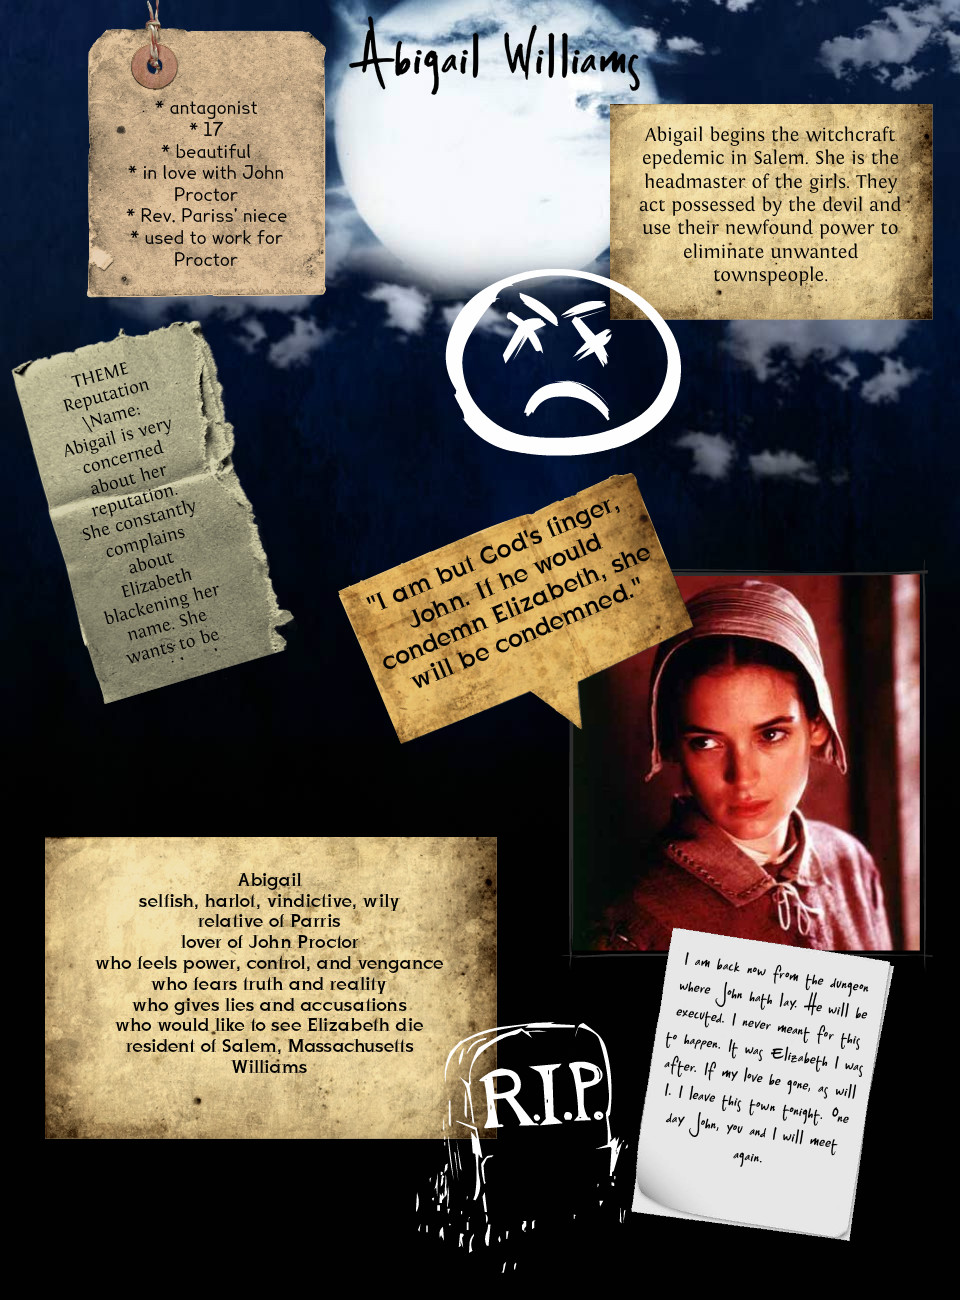 the crucible of abigail williams Read this free literature essay and other term papers, research papers and book reports antagonist of the crucible: abigail williams seth mahoney mrs redmerski english 2 12/1/15 antagonist of the crucible: abigail williams in arthur miller's the crucible.